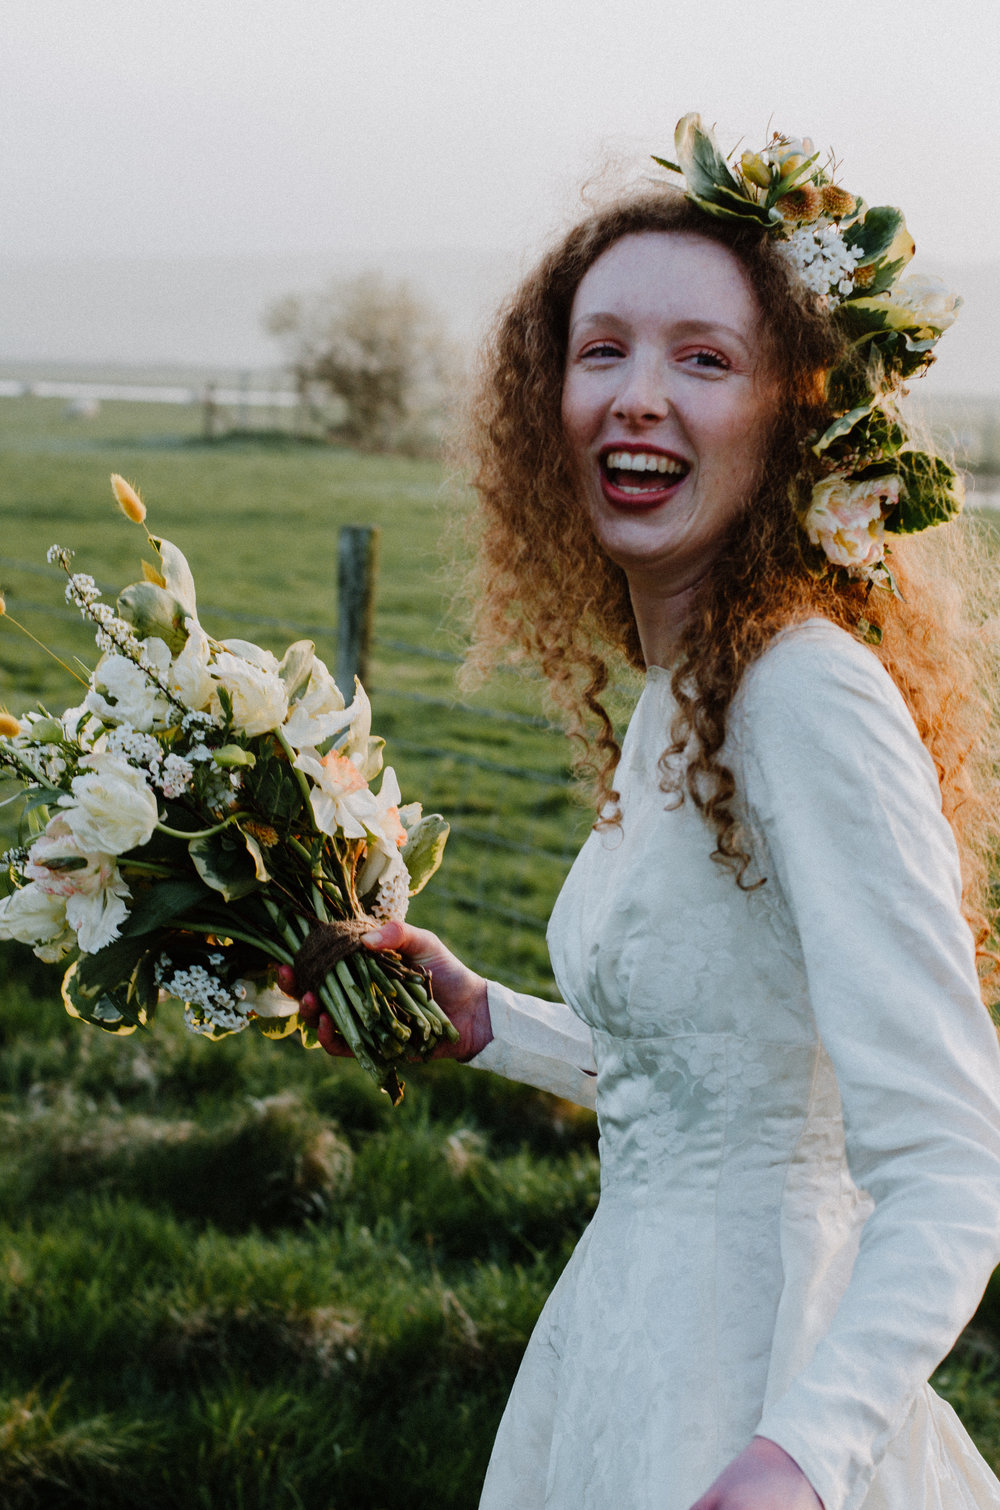 Bridal - Cuckmere Haven 2018 - Aiste Saulyte Photography-53.jpg